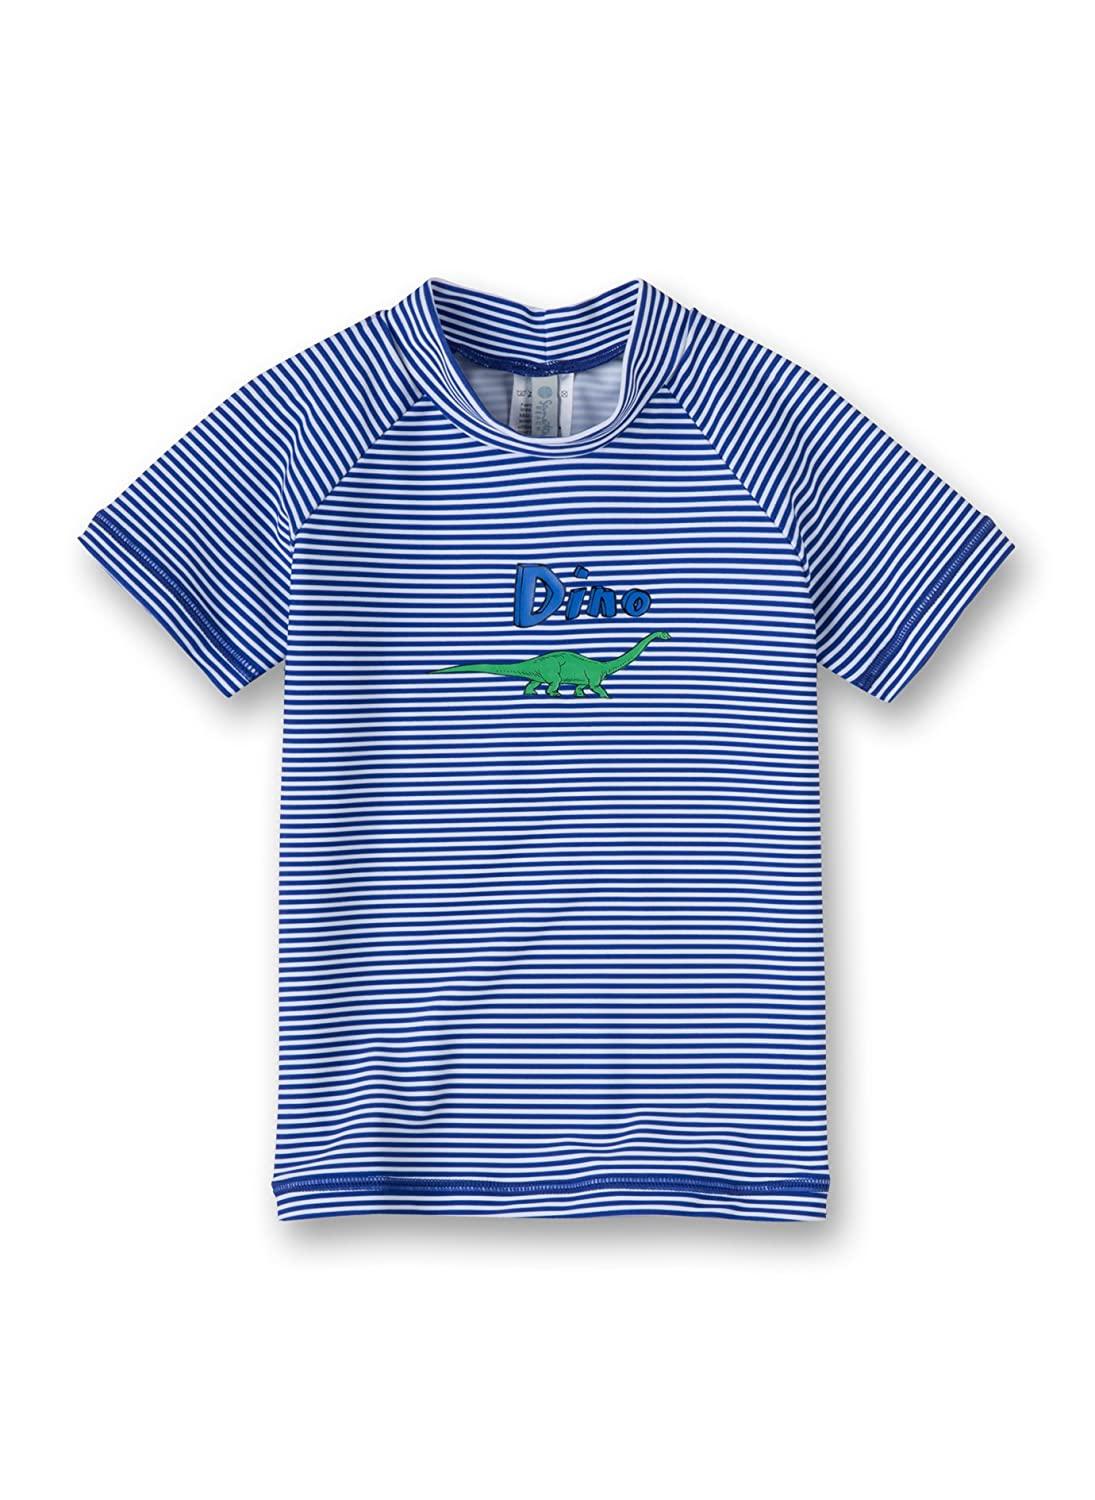 Sanetta Baby Boys' Swim Shirt 430386